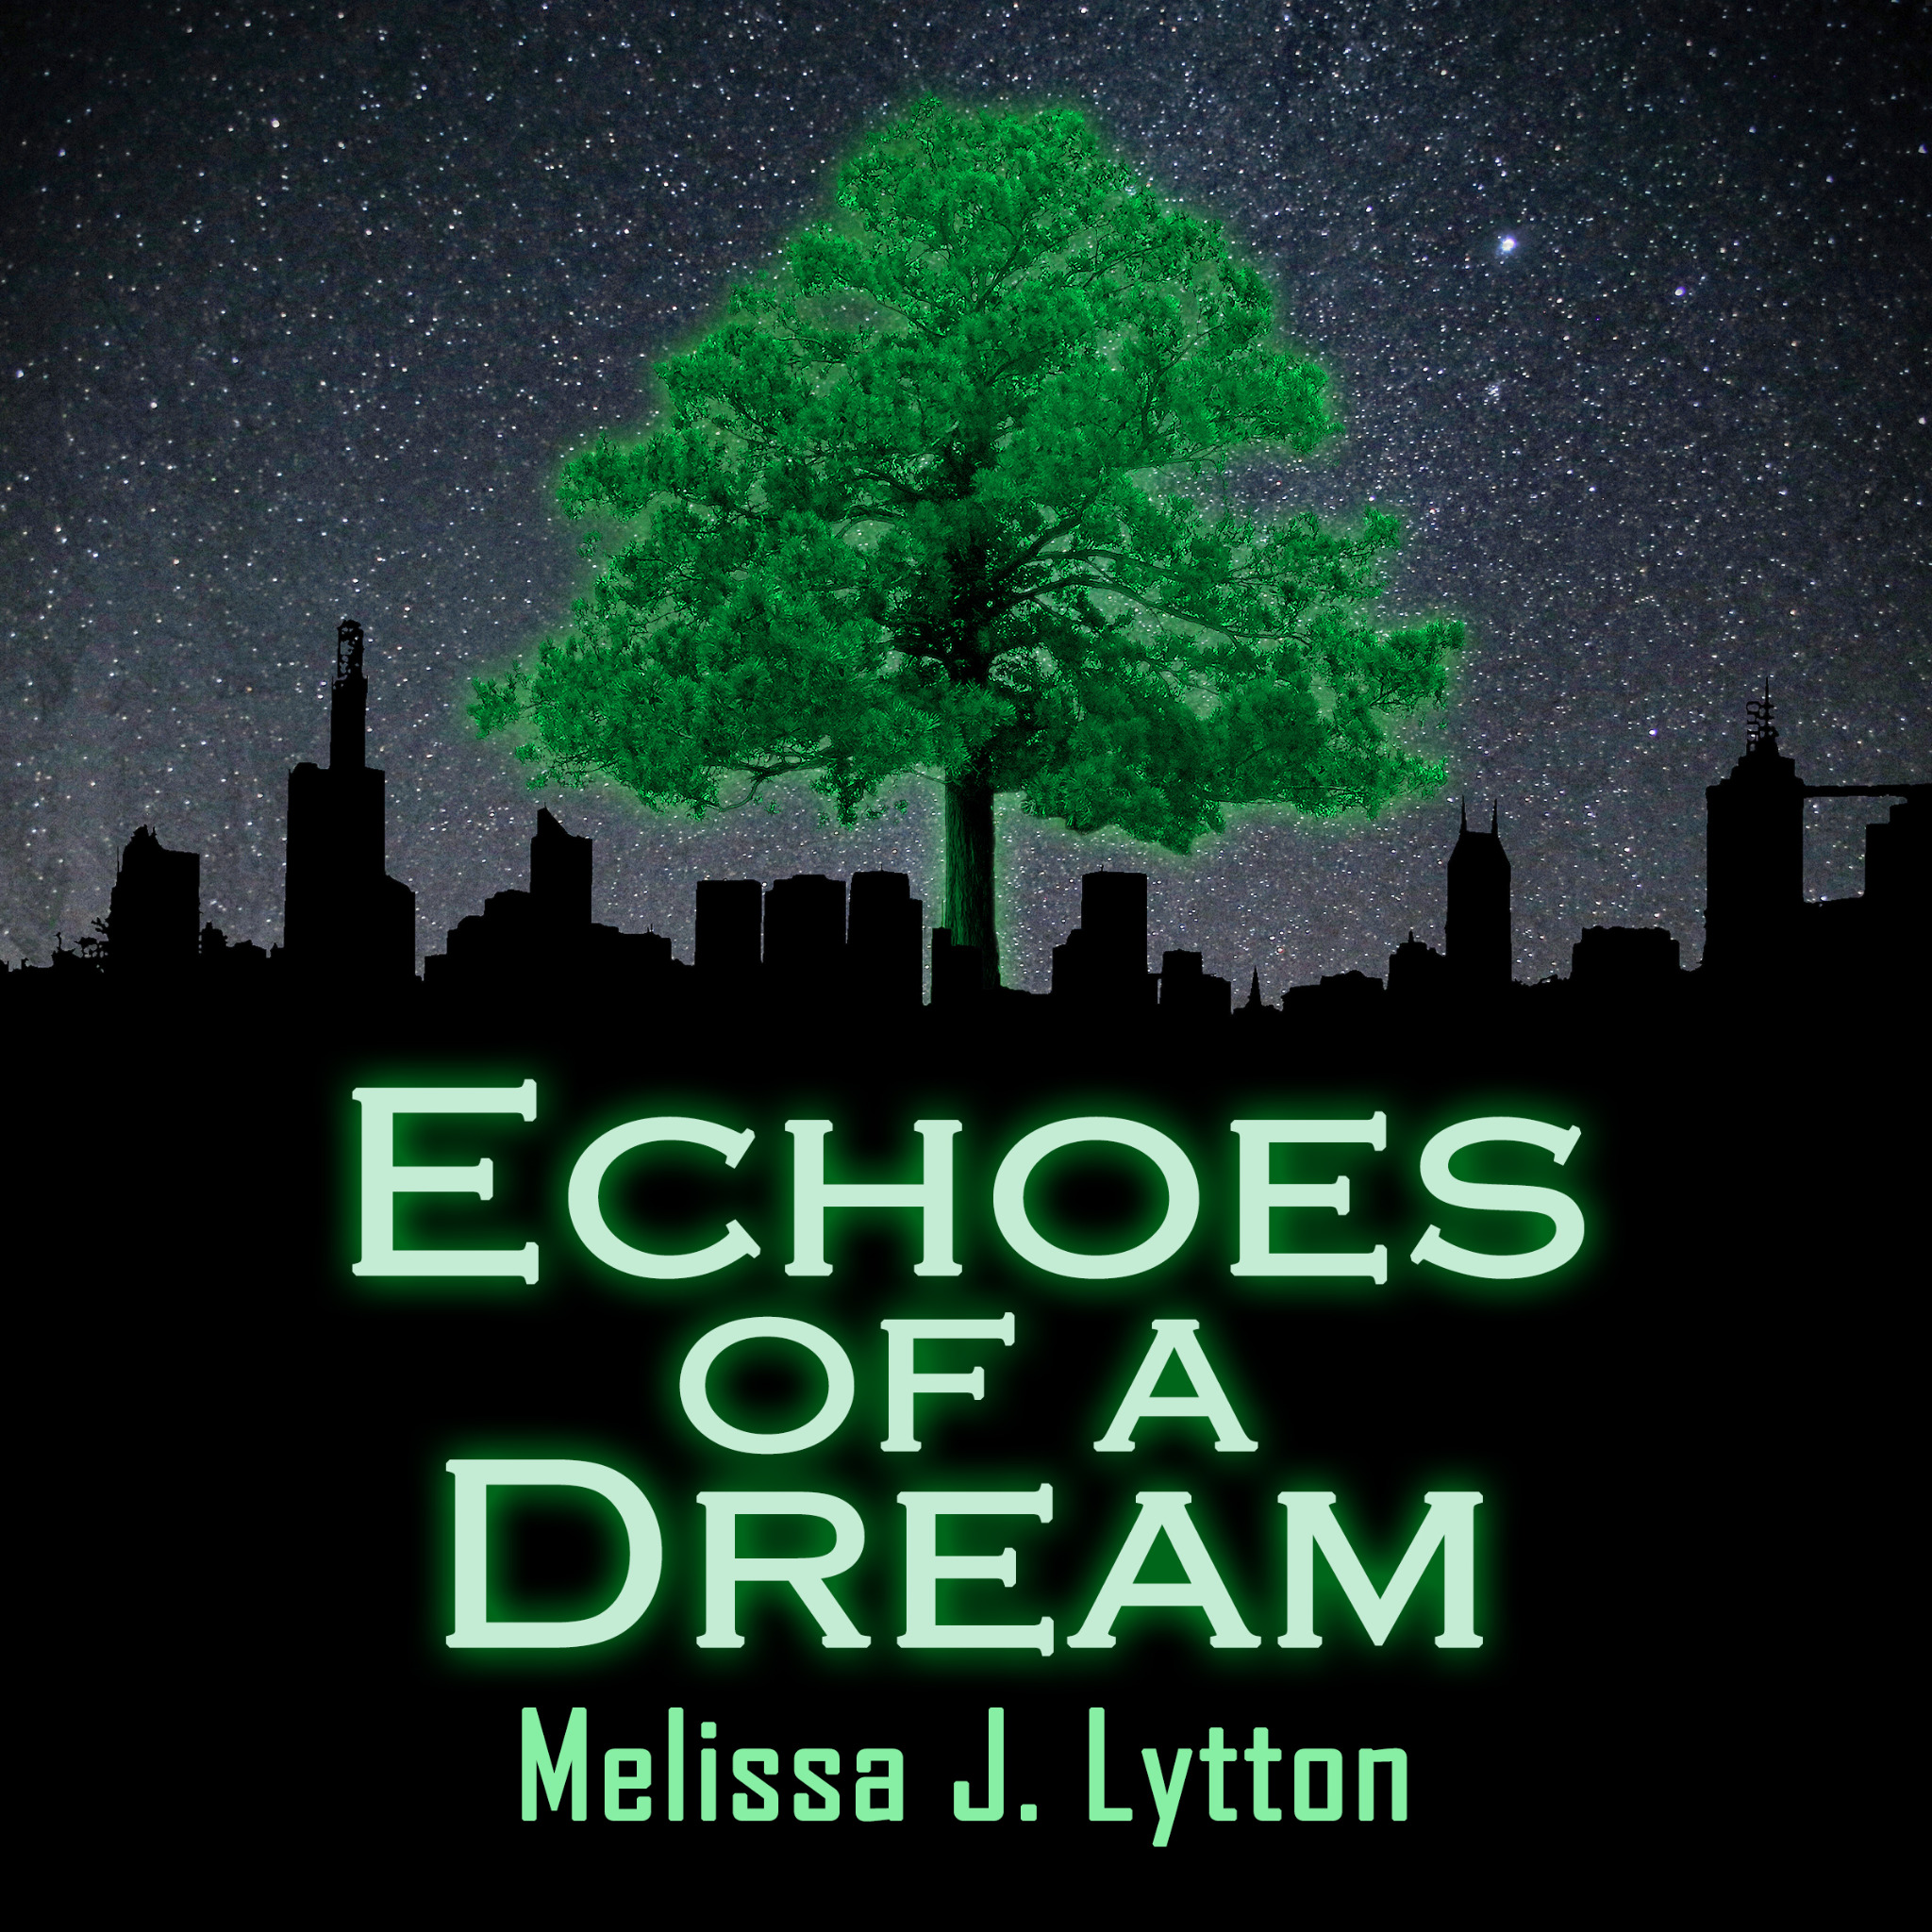 Echoes of a Dream eBook